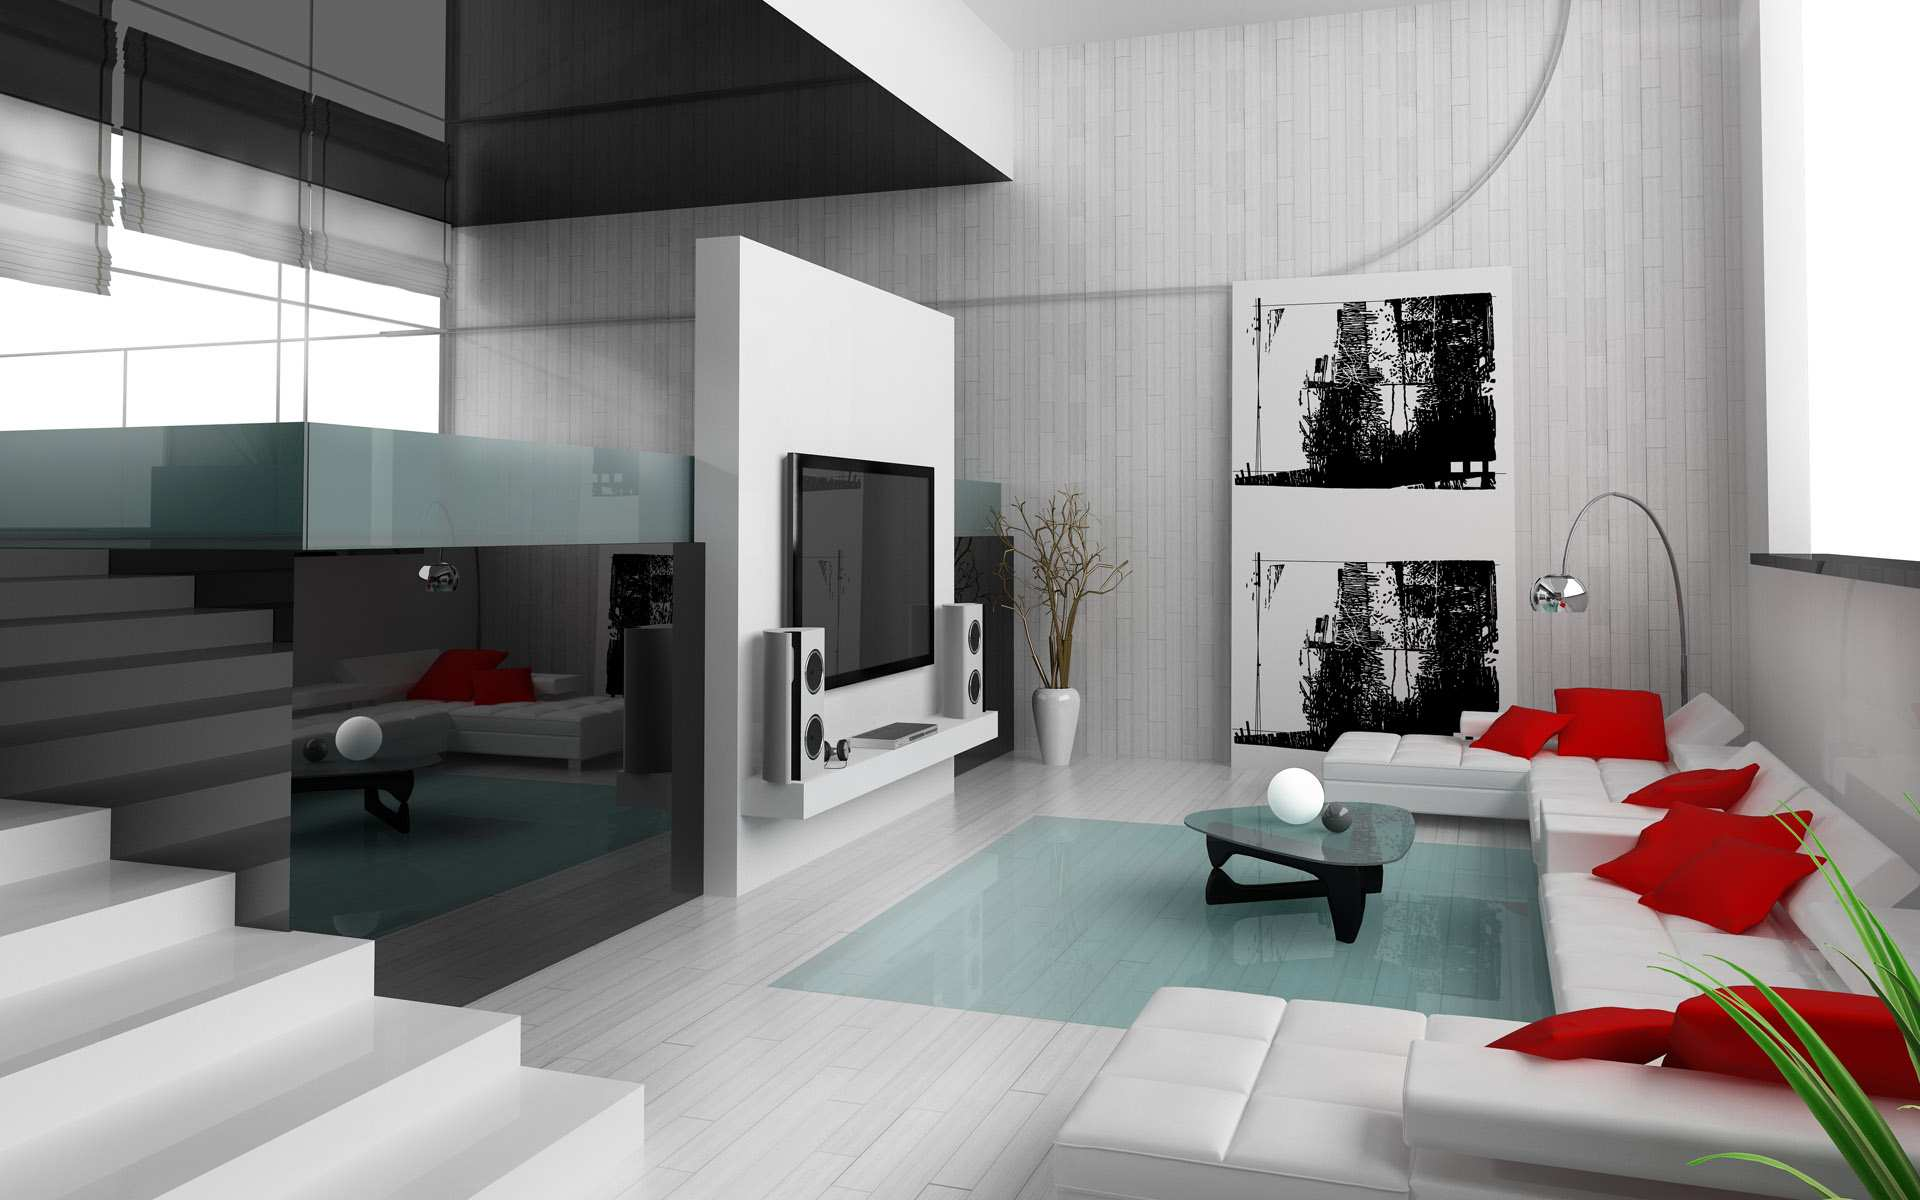 23 modern interior design ideas for the perfect home Interior design and interior decoration